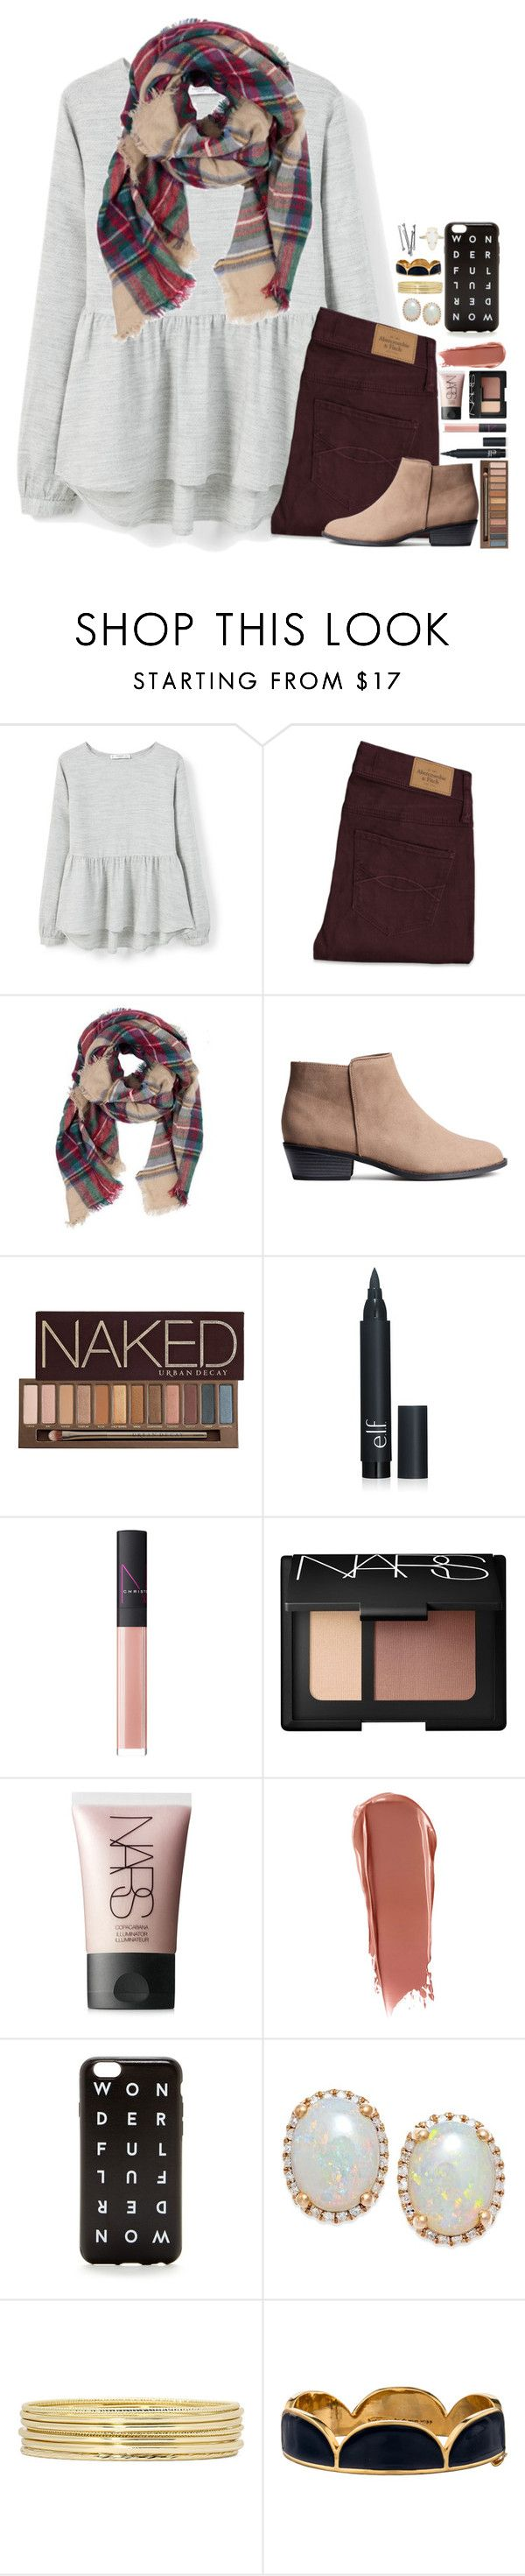 """I never look back darling. It distracts from the now."" by lmr14 ❤ liked on Polyvore featuring MANGO, Abercrombie & Fitch, Urban Decay, NARS Cosmetics, Liz Claiborne, Kate Spade, Kendra Scott, BOBBY, women's clothing and women"